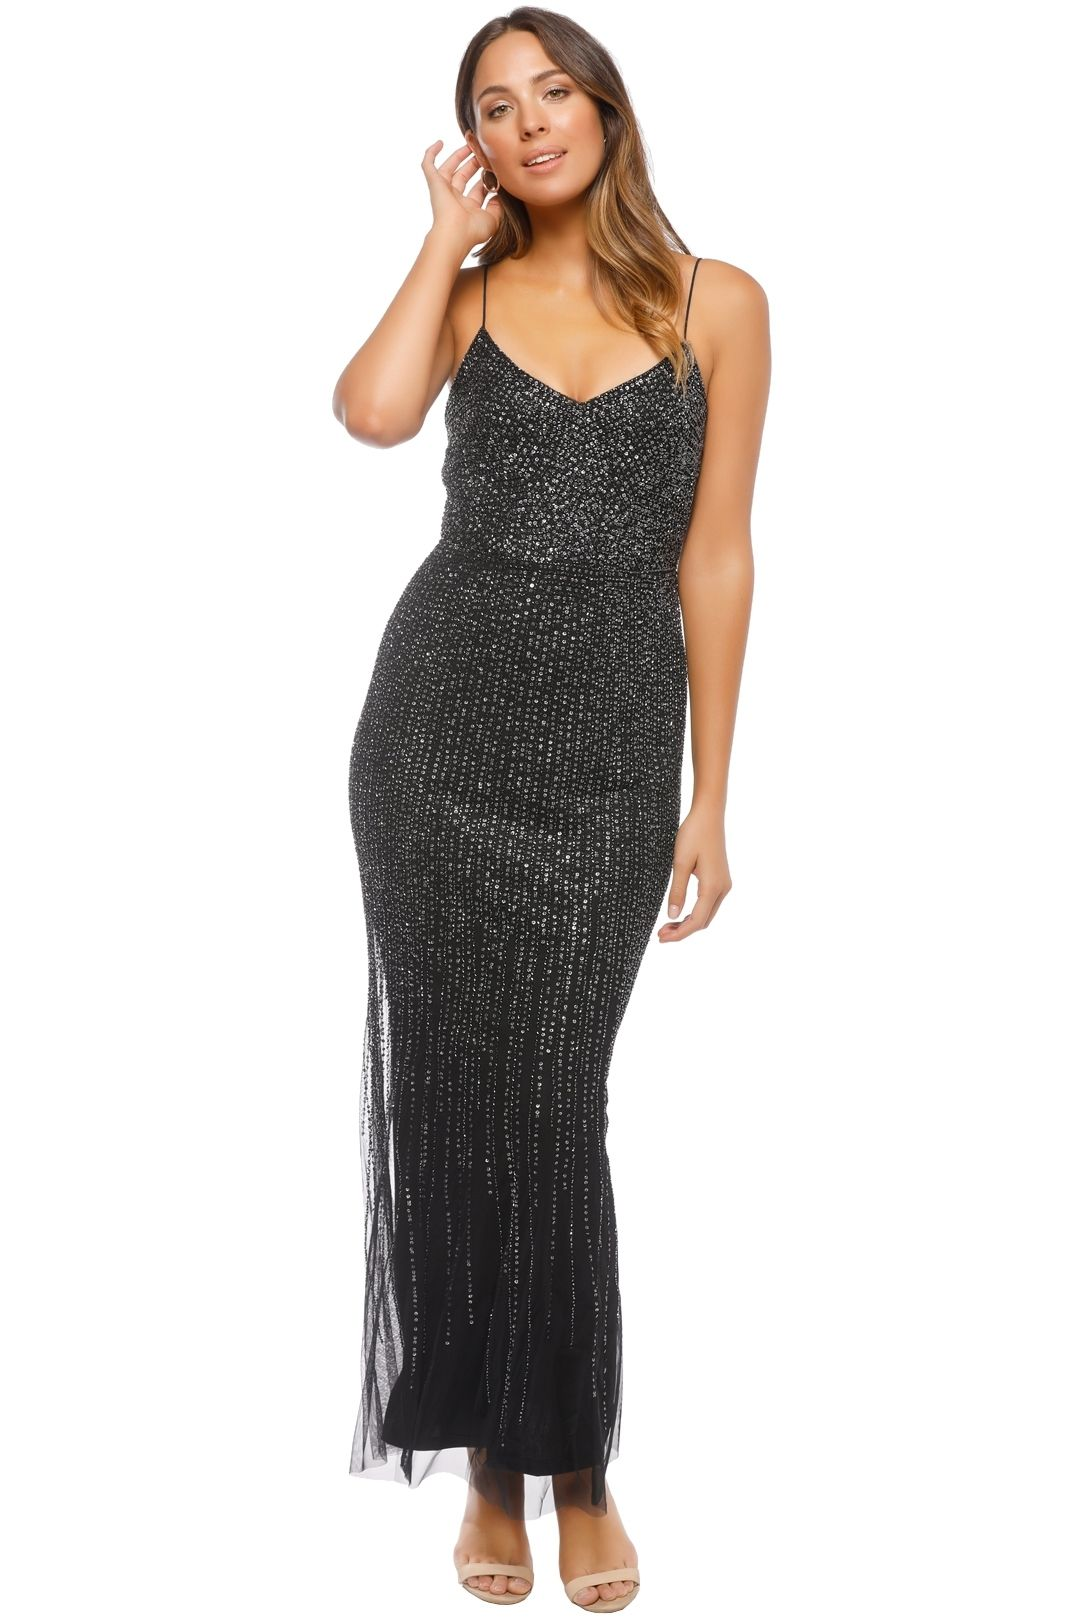 Adrianna Papell - Long All Over Beaded Dress - Black - Front